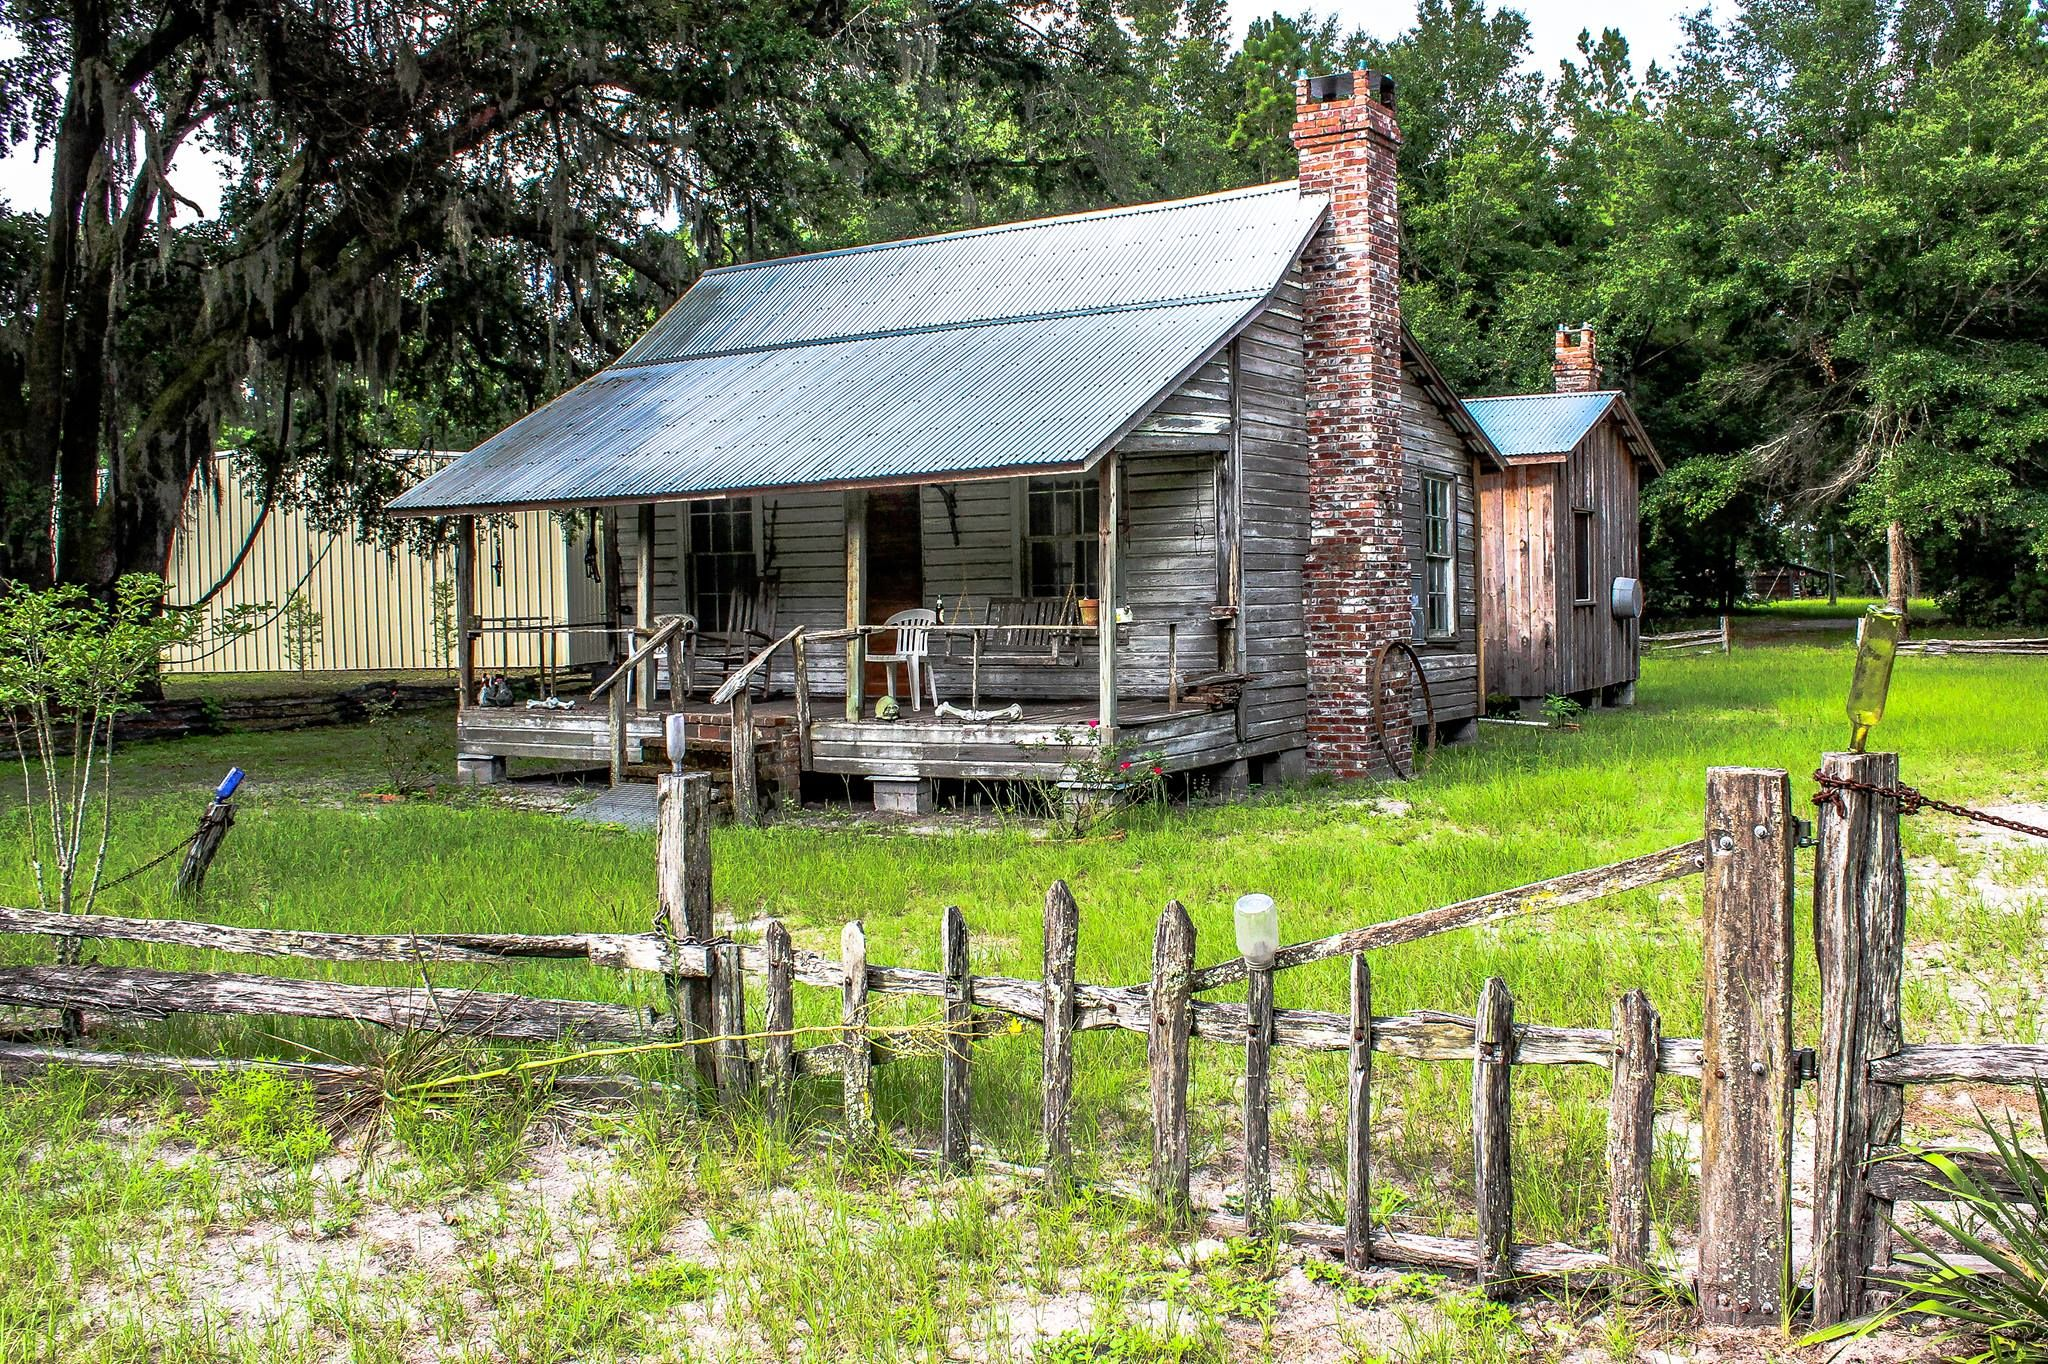 florida cracker house this looks like our old cracker house in florida cracker house this looks like our old cracker house in north florida cracker houses cabins abandoned pinterest crackers house and cabin